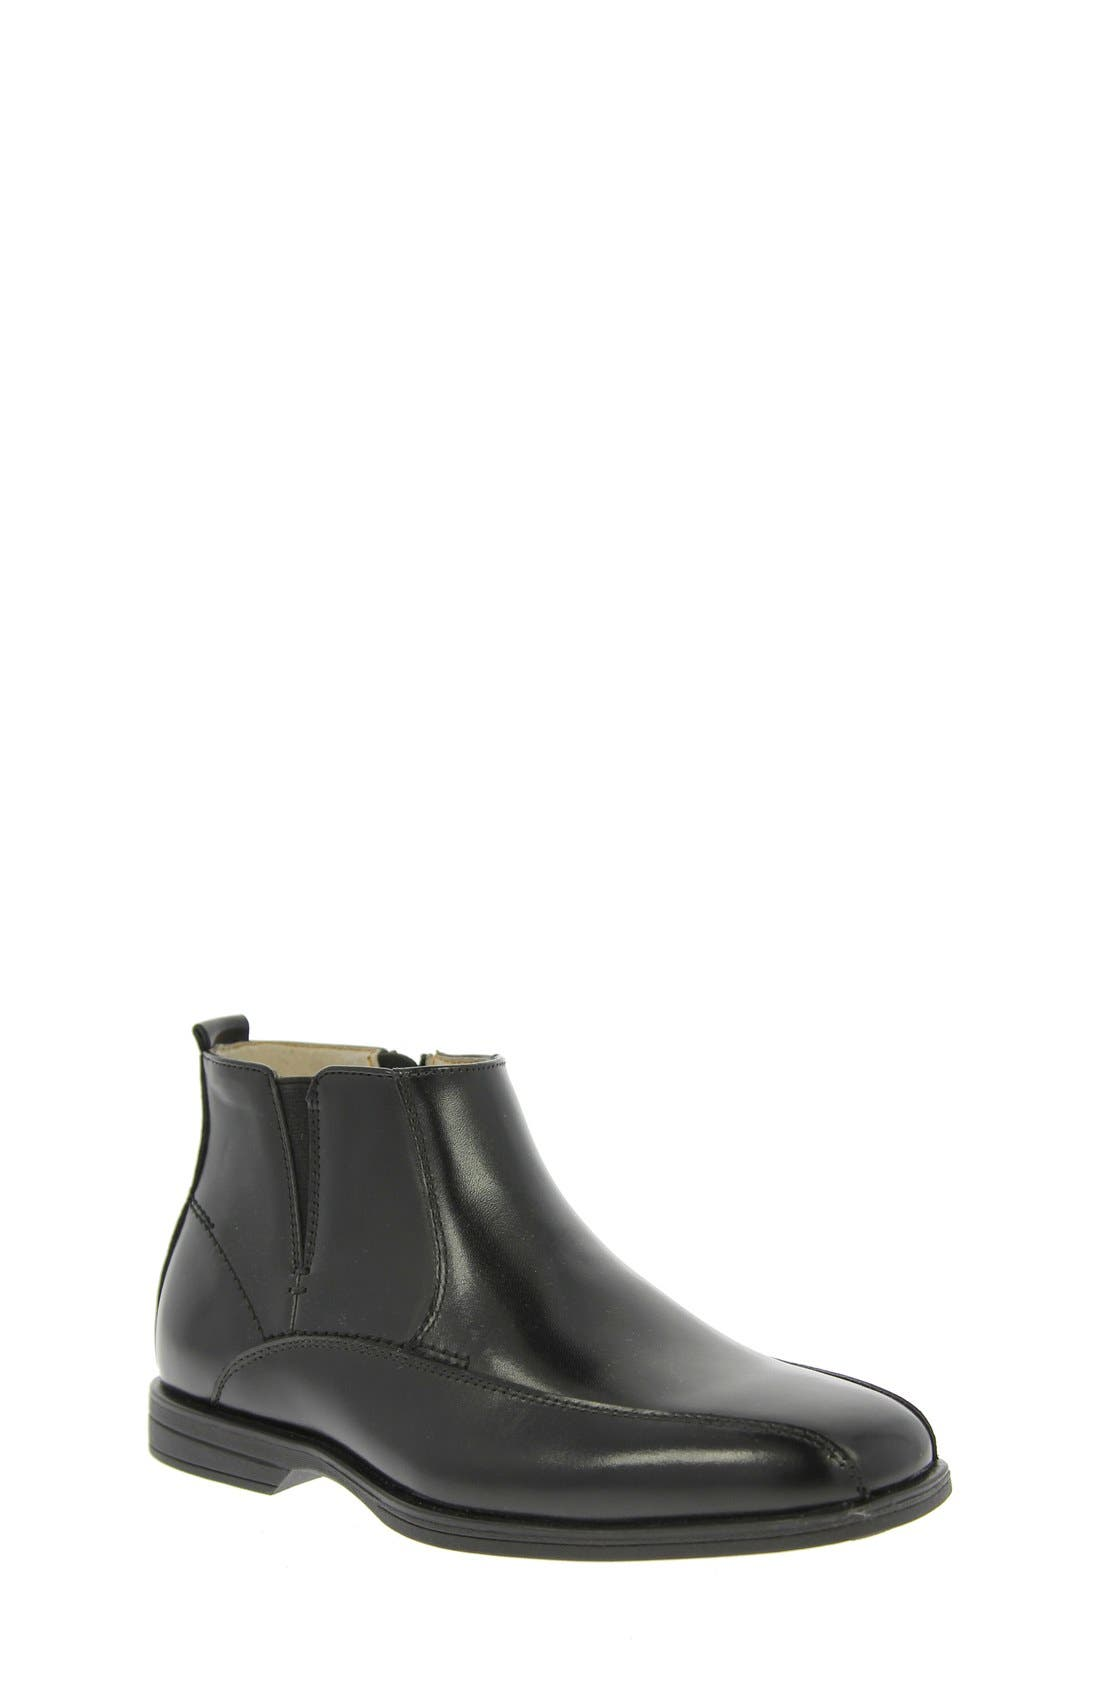 Florsheim Chelsea Boot (Toddler, Little Kid & Big Kid)